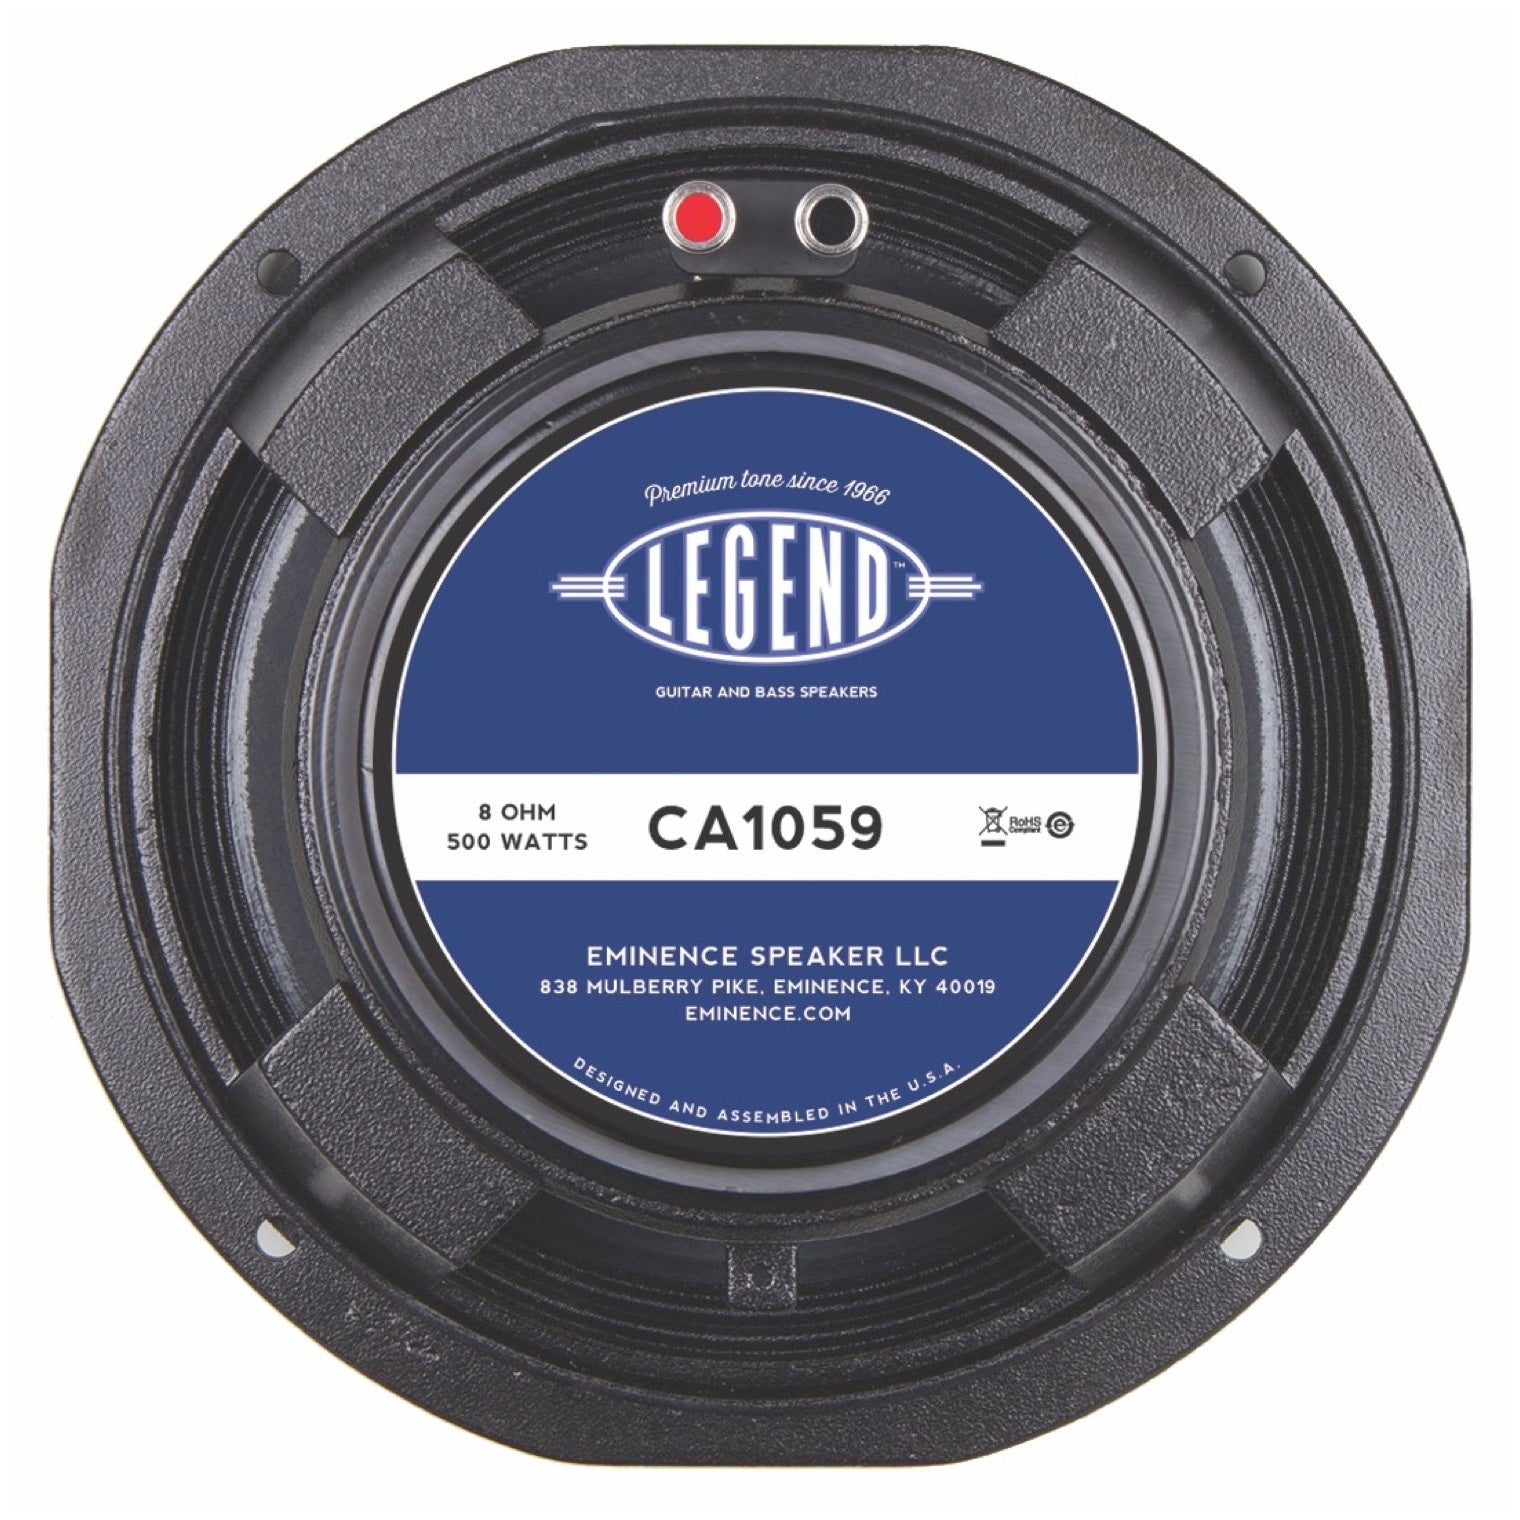 Eminence Legend CA1059 Replacement Bass Speaker (250 Watts), 8 Ohms, 10 Inch